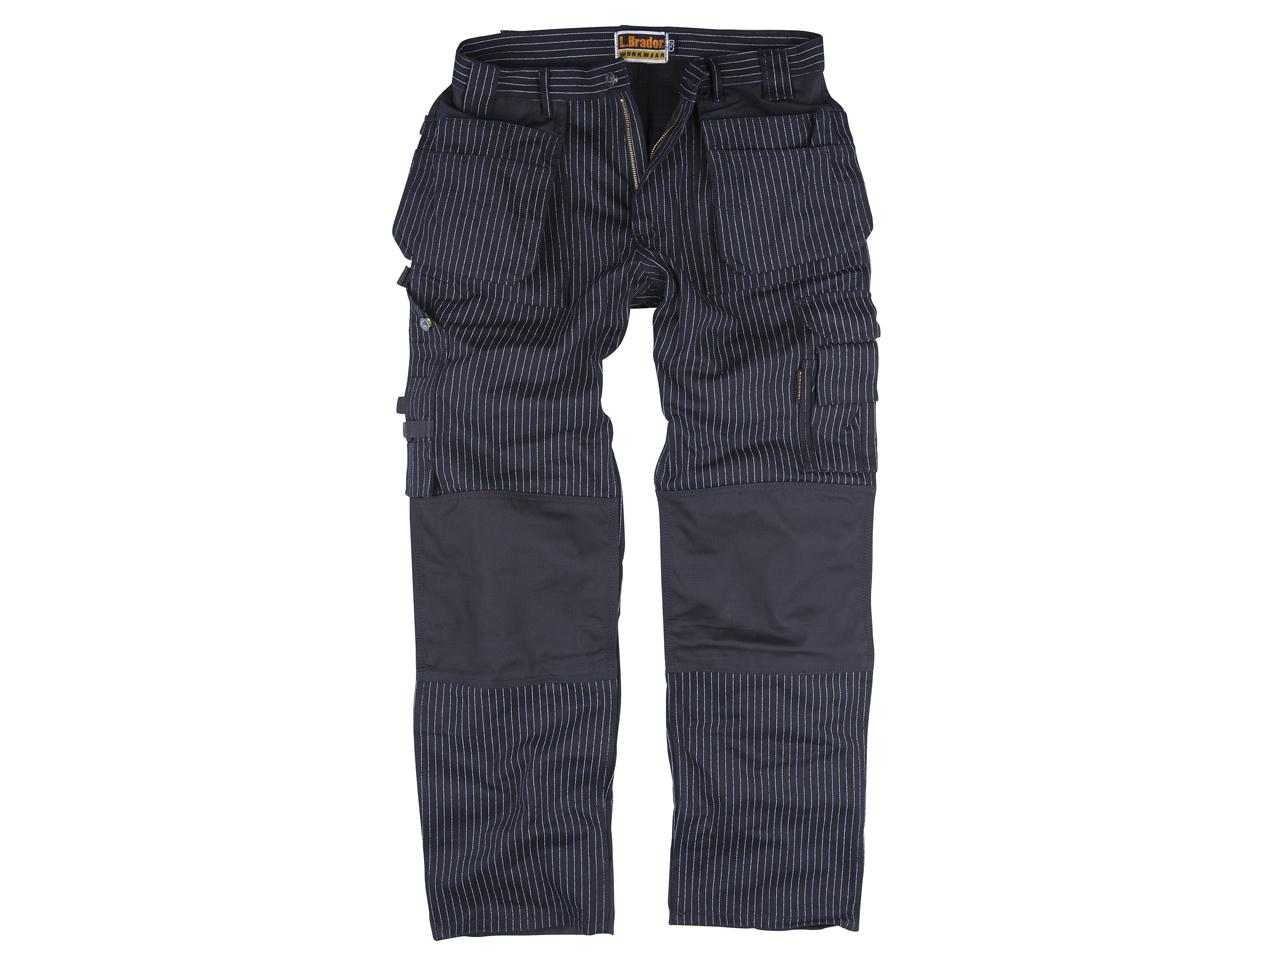 pantalone-da-lavoro-safety-shop